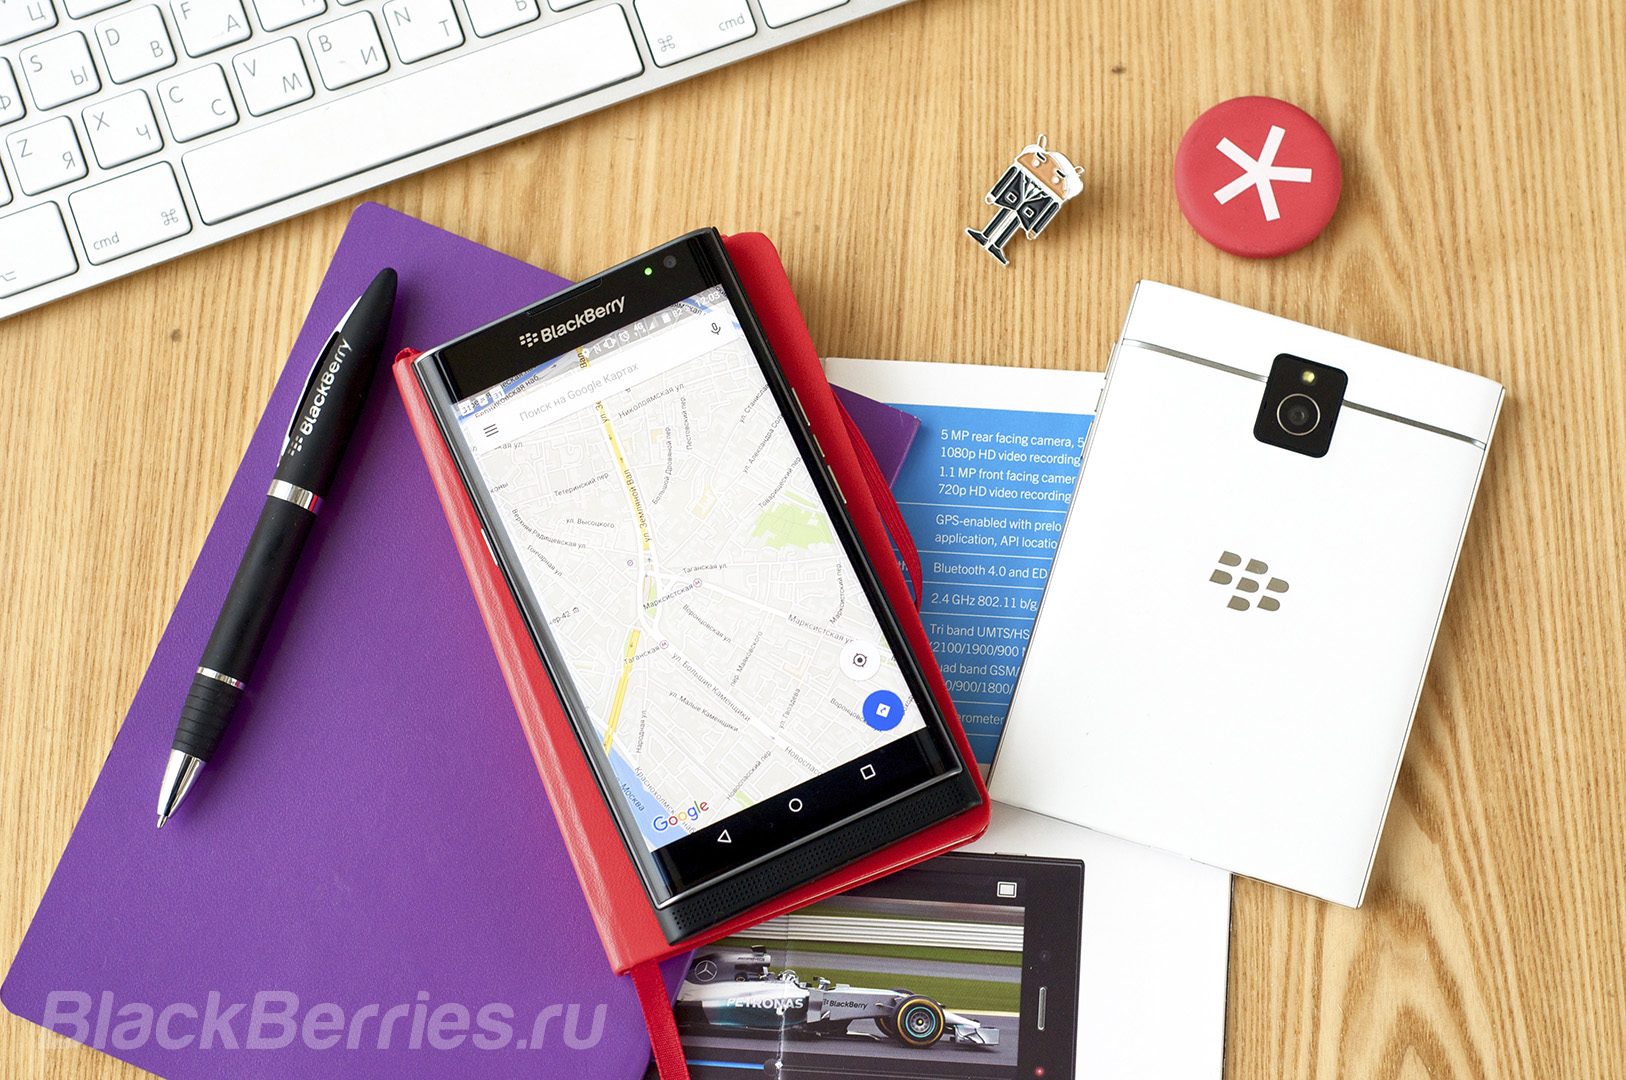 BlackBerry-Priv-Review-036